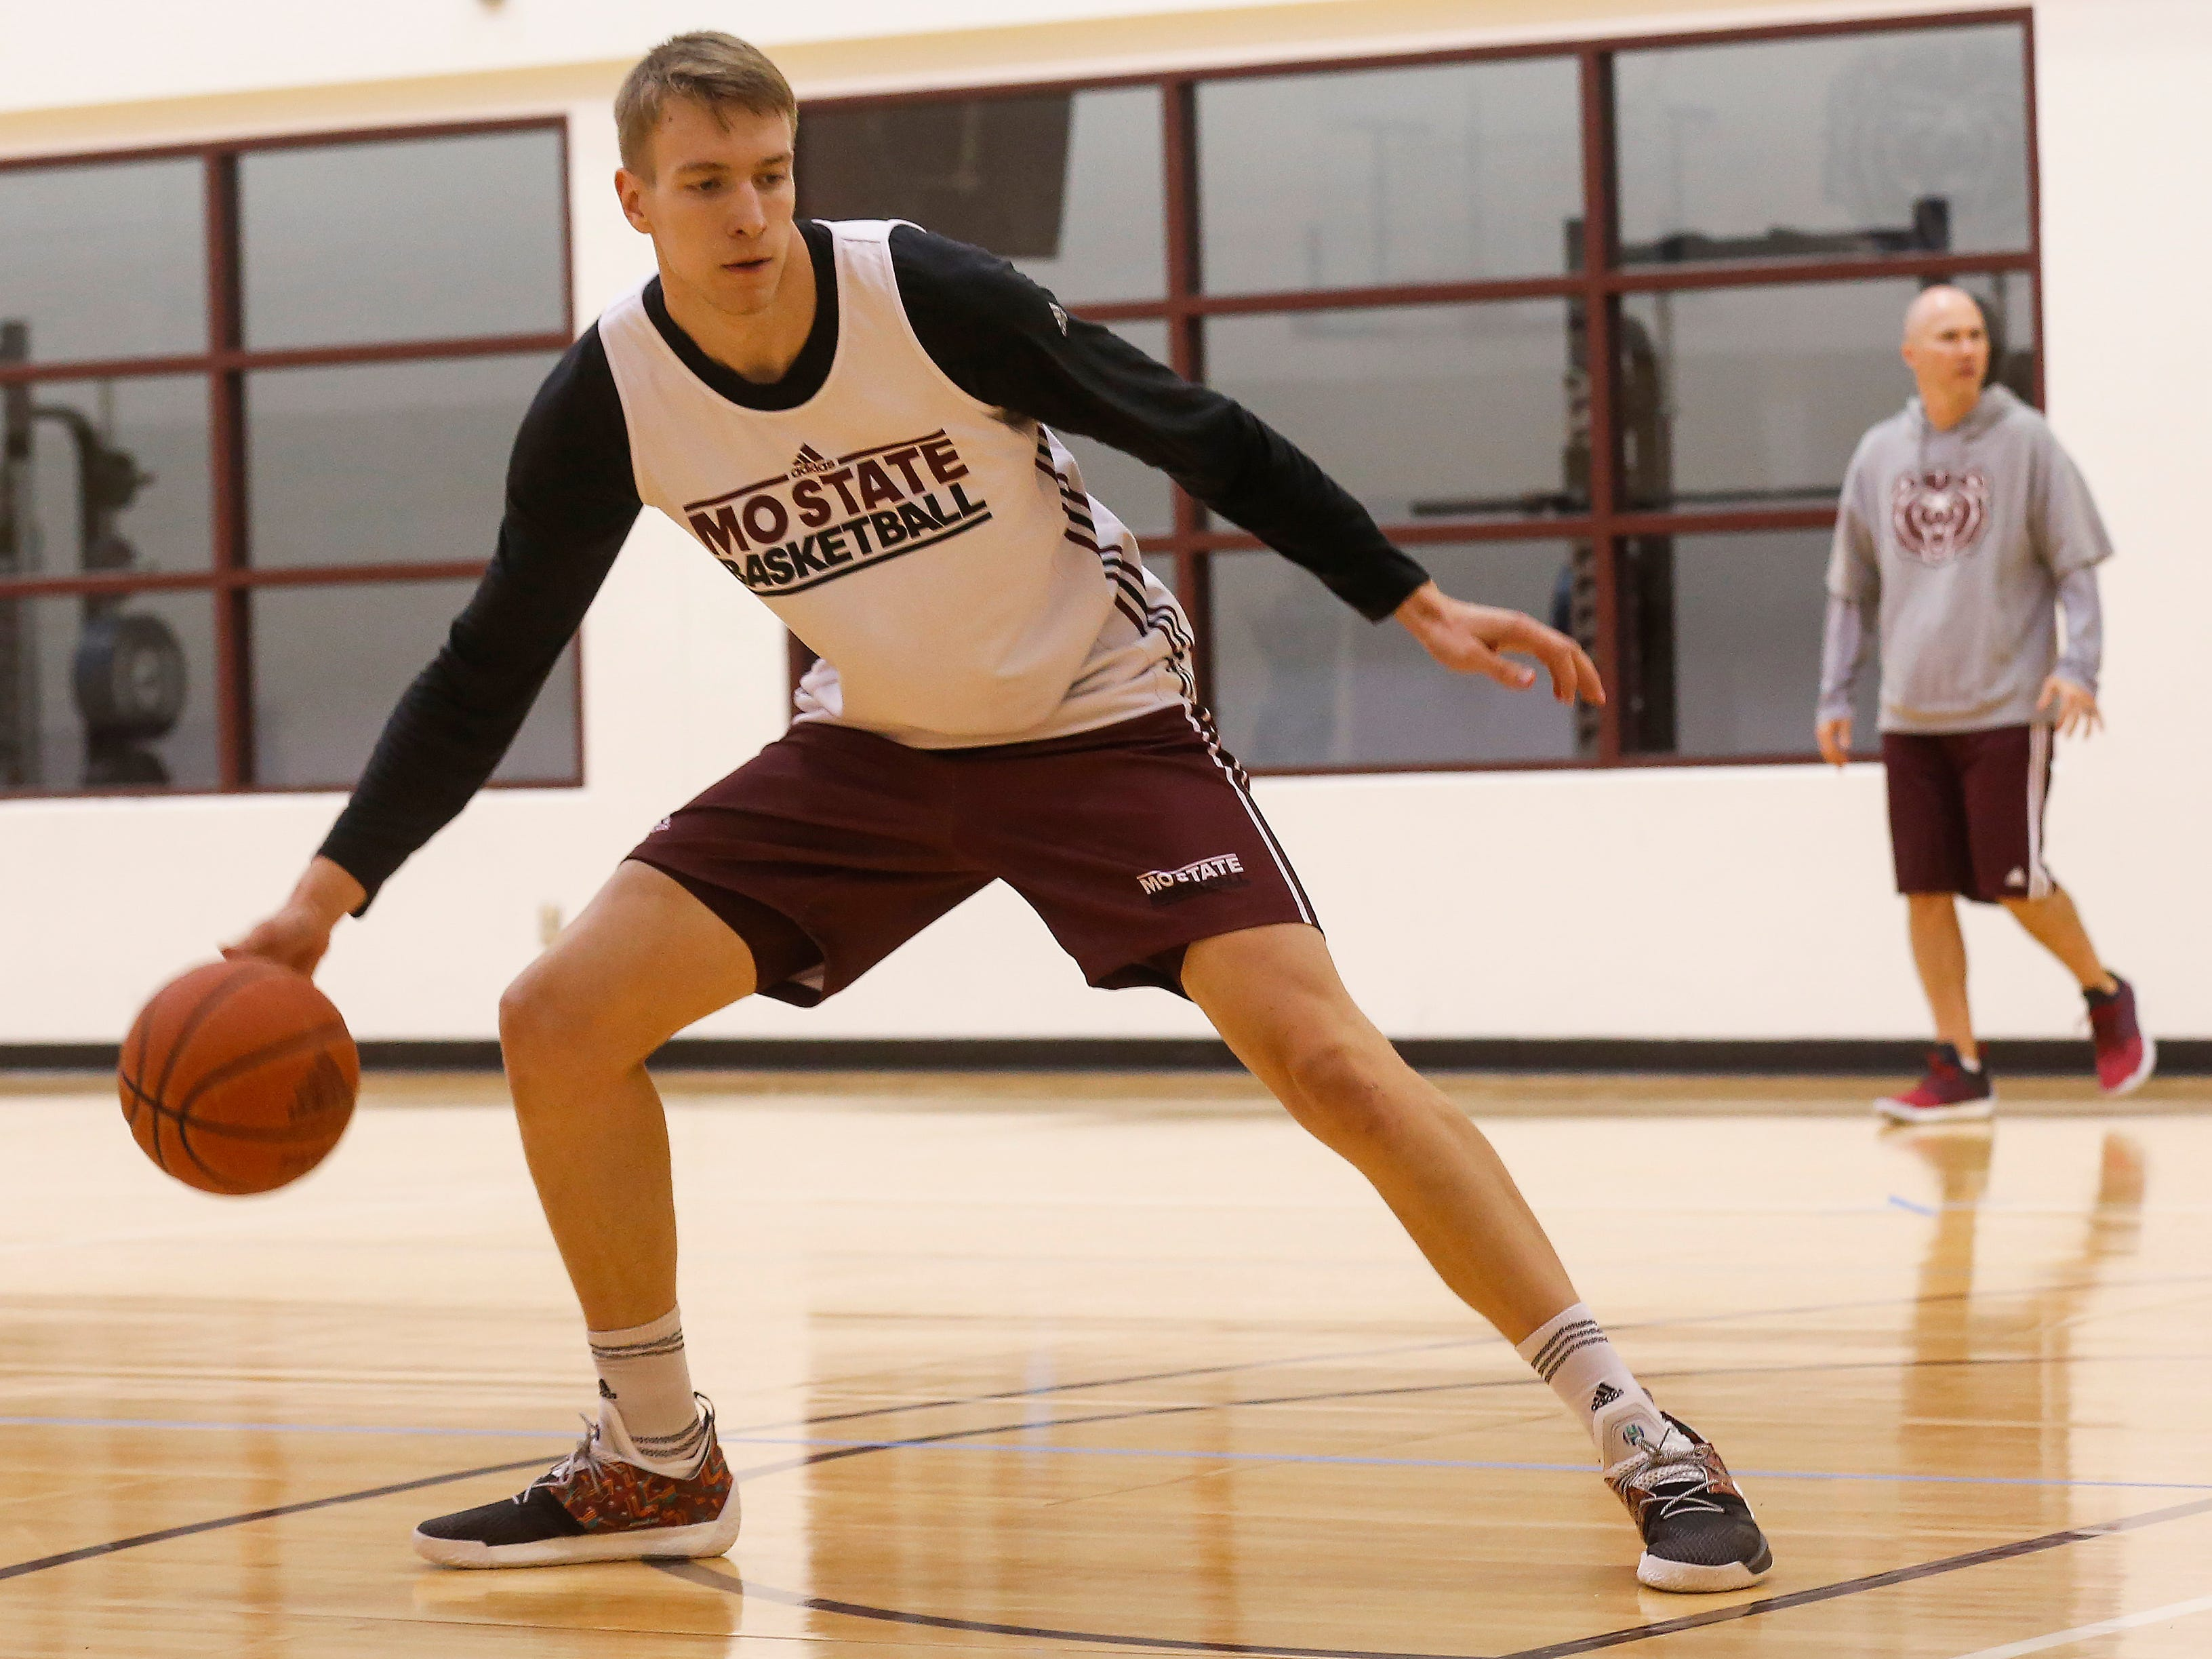 Scenes from the Missouri State University men's basketball team's first practice of the season on Tuesday, Sept. 25, 2018.